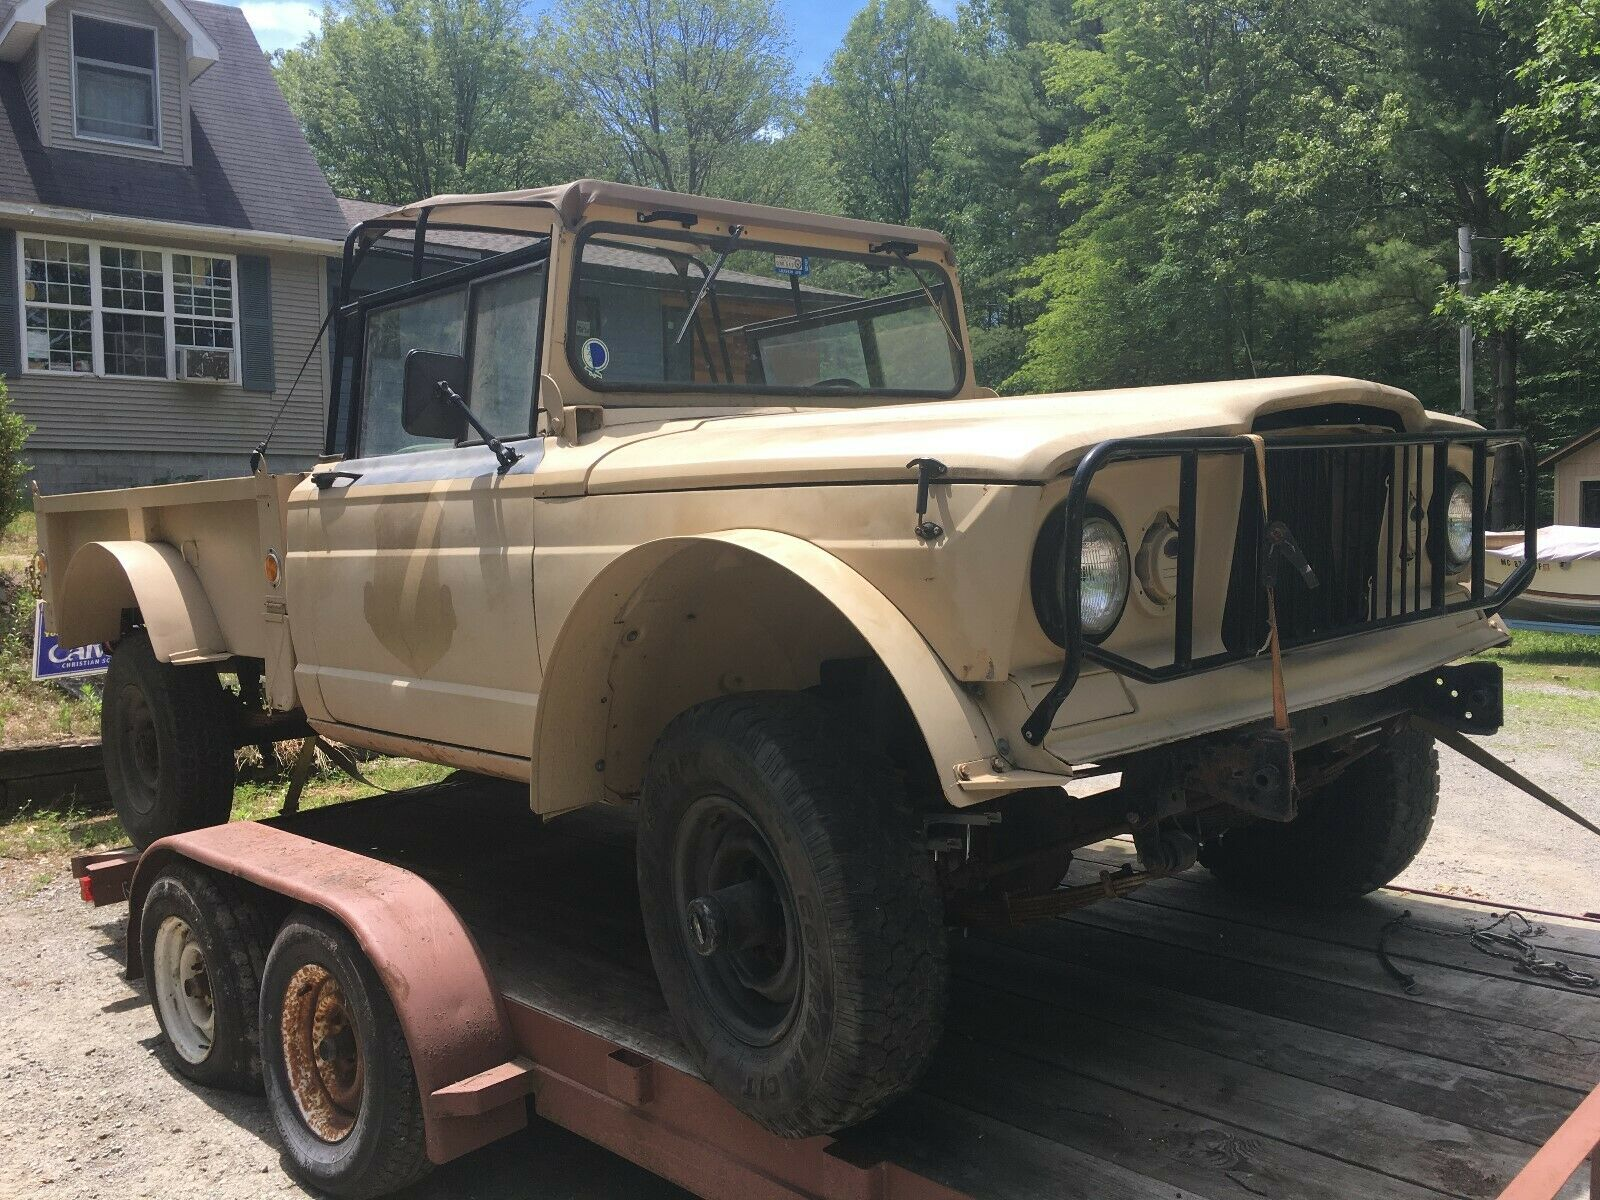 project 1967 Kaiser jeep 1 1/4 ton M715 military for sale